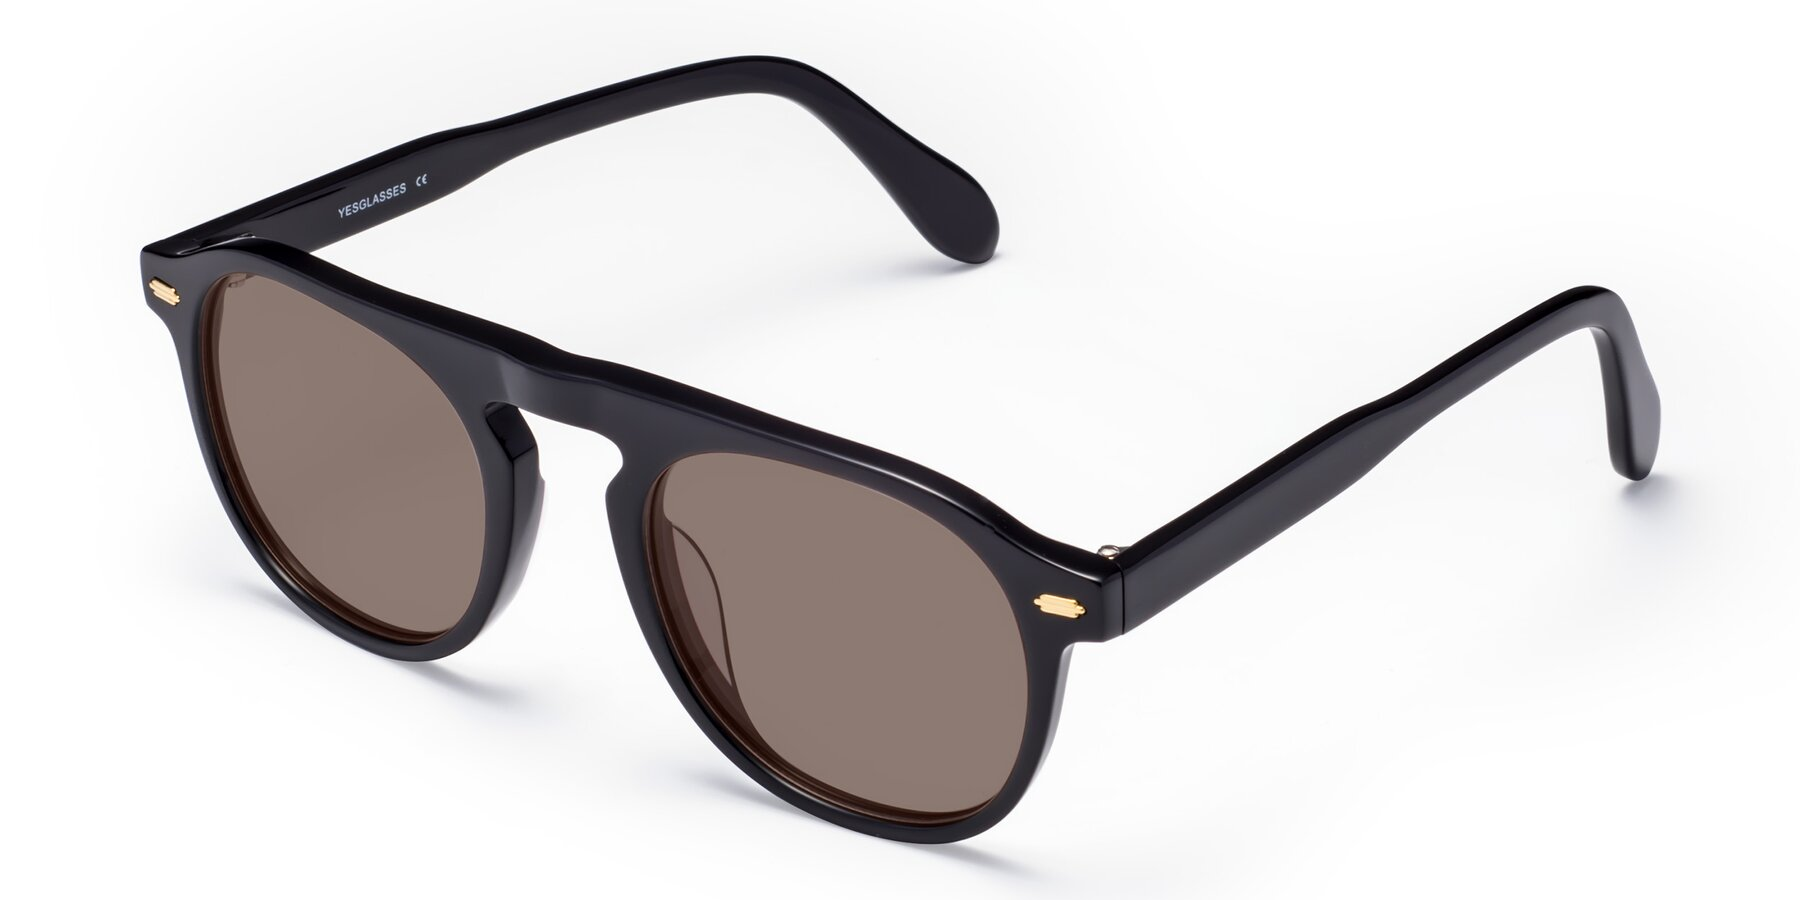 Angle of Mufasa in Black with Medium Brown Tinted Lenses